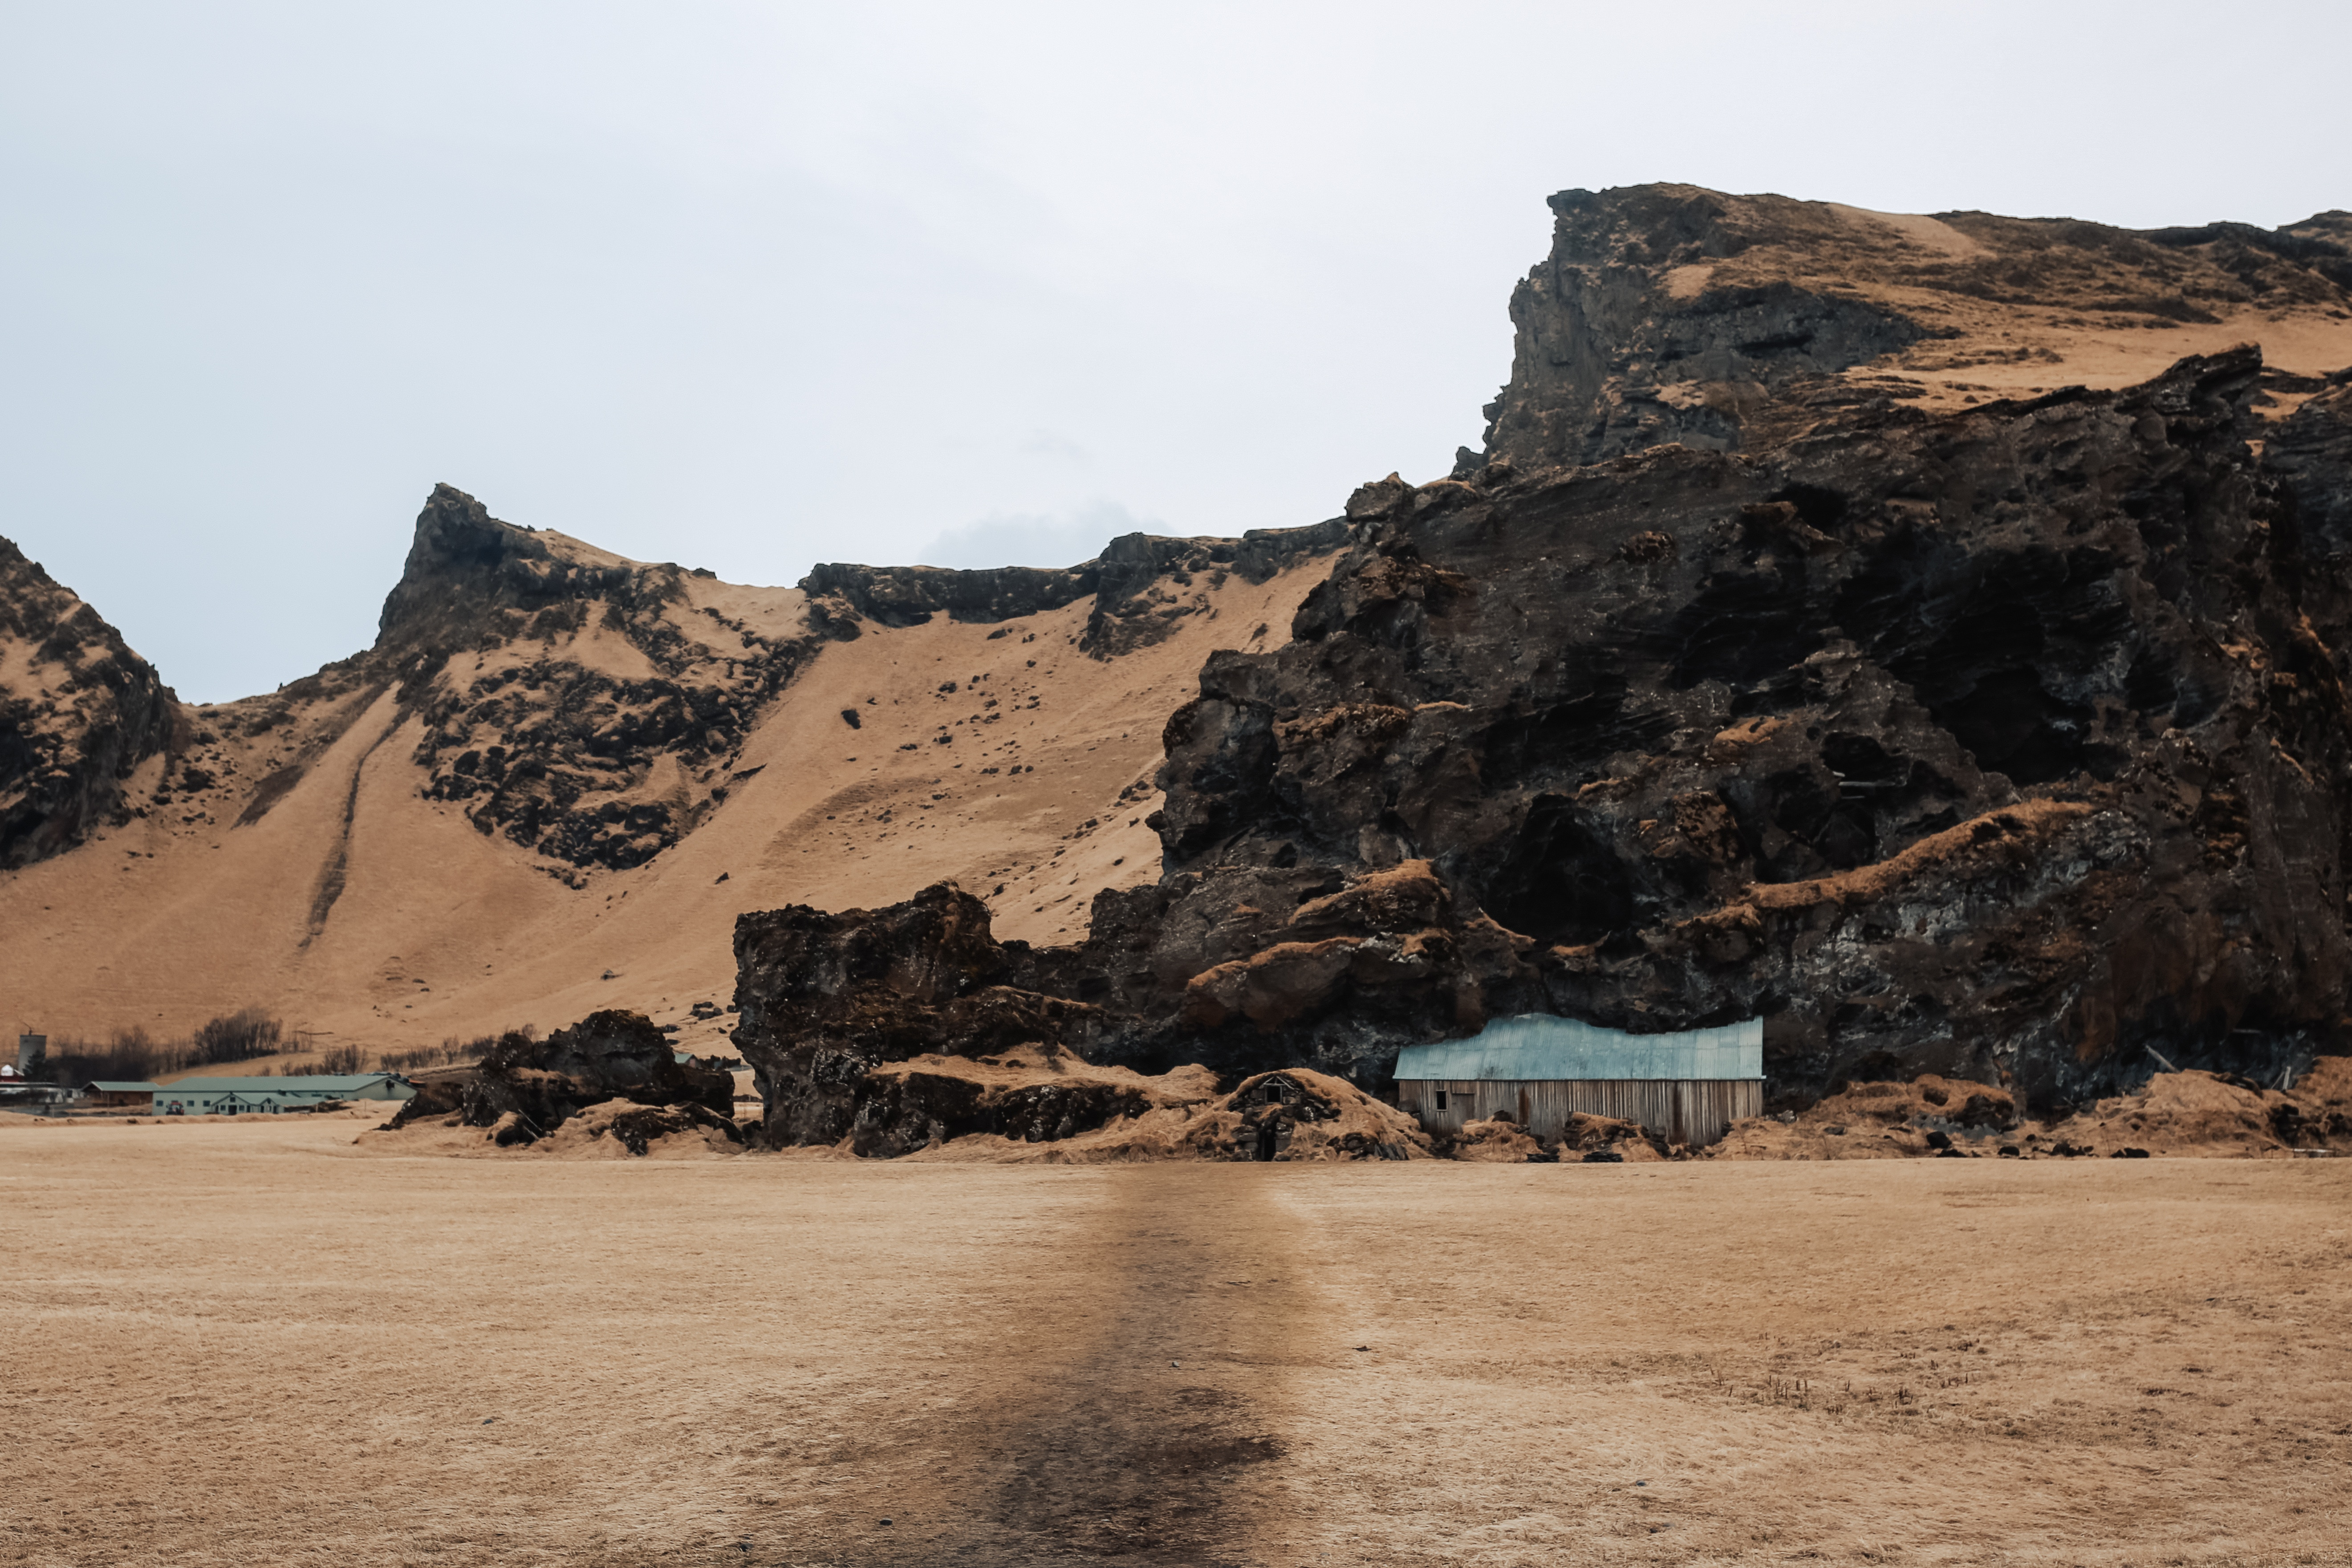 Troll houses in Iceland, on the way to Vik.